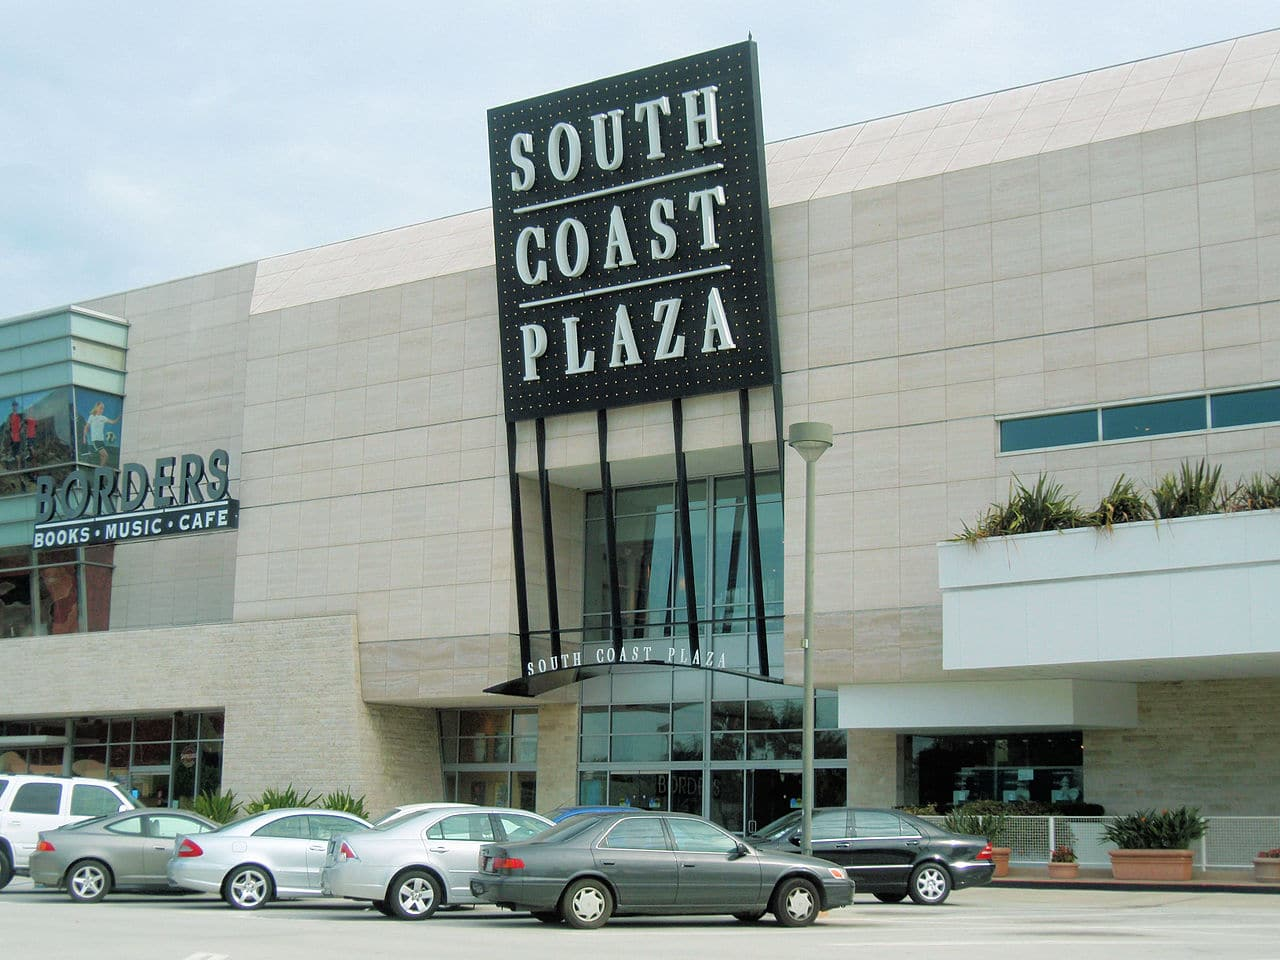 Entrada del South Coast Plaza